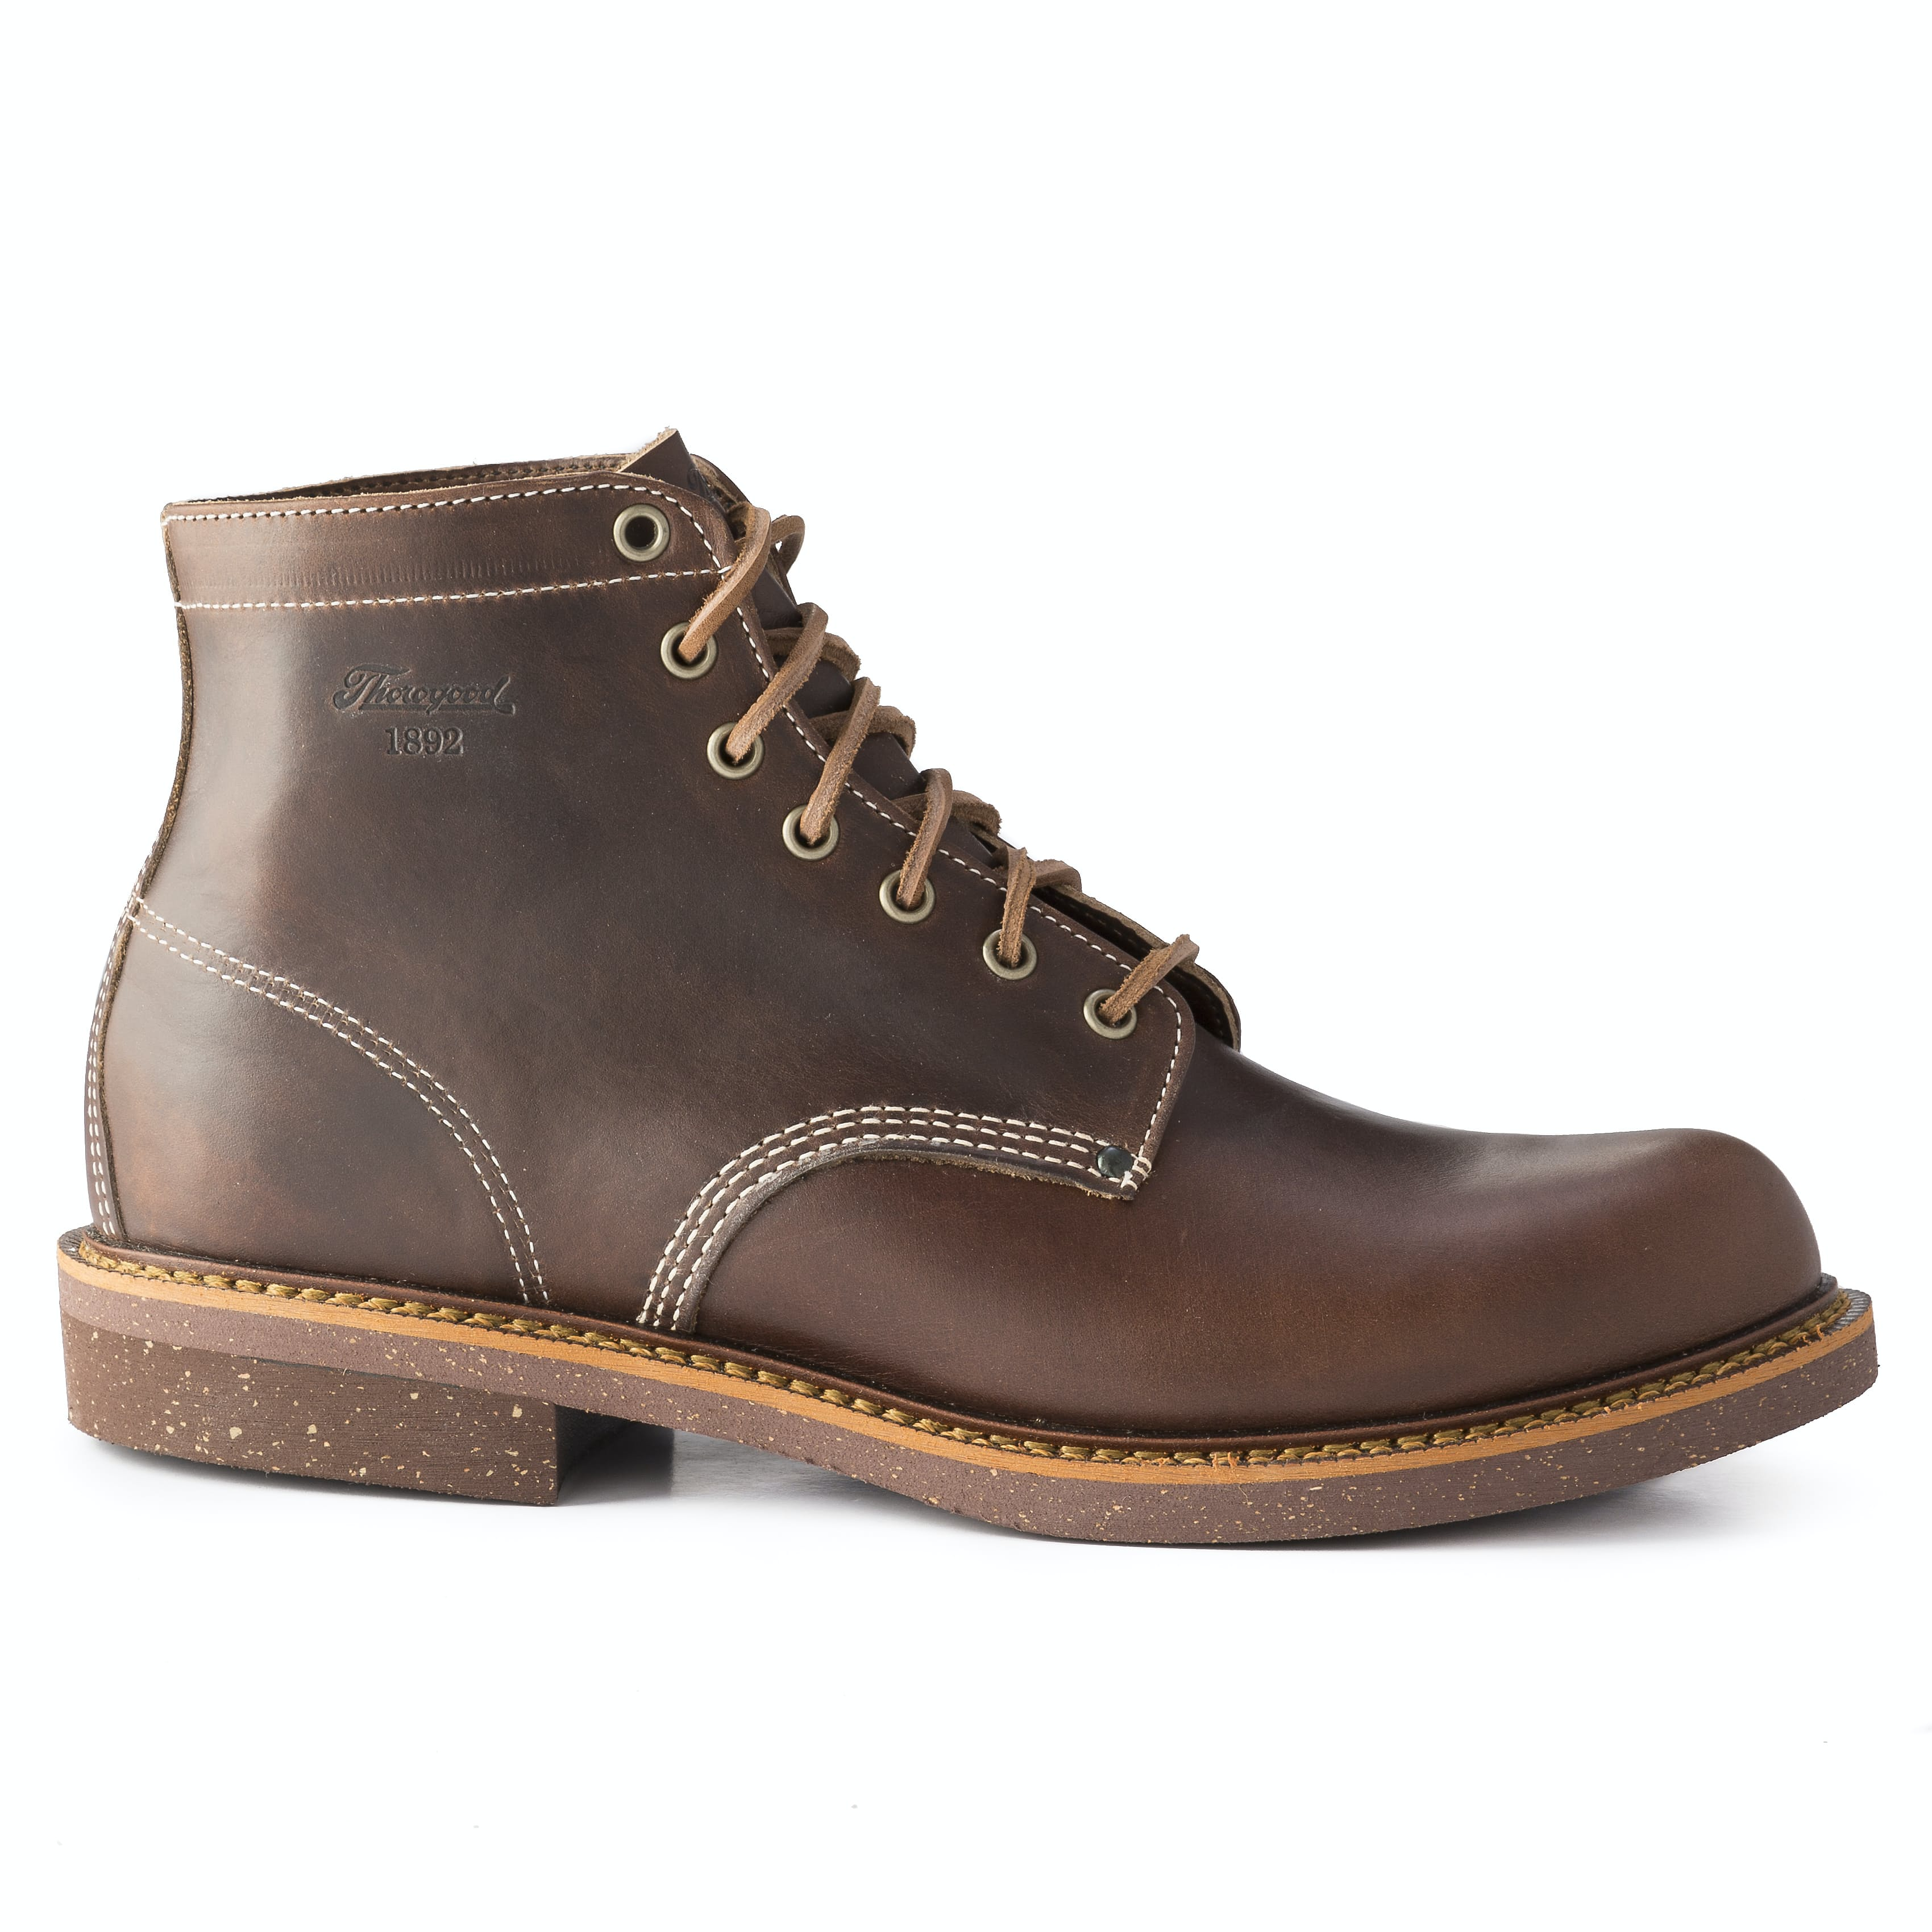 b6d38a8dcf6 Shop Men's Thorogood | Huckberry